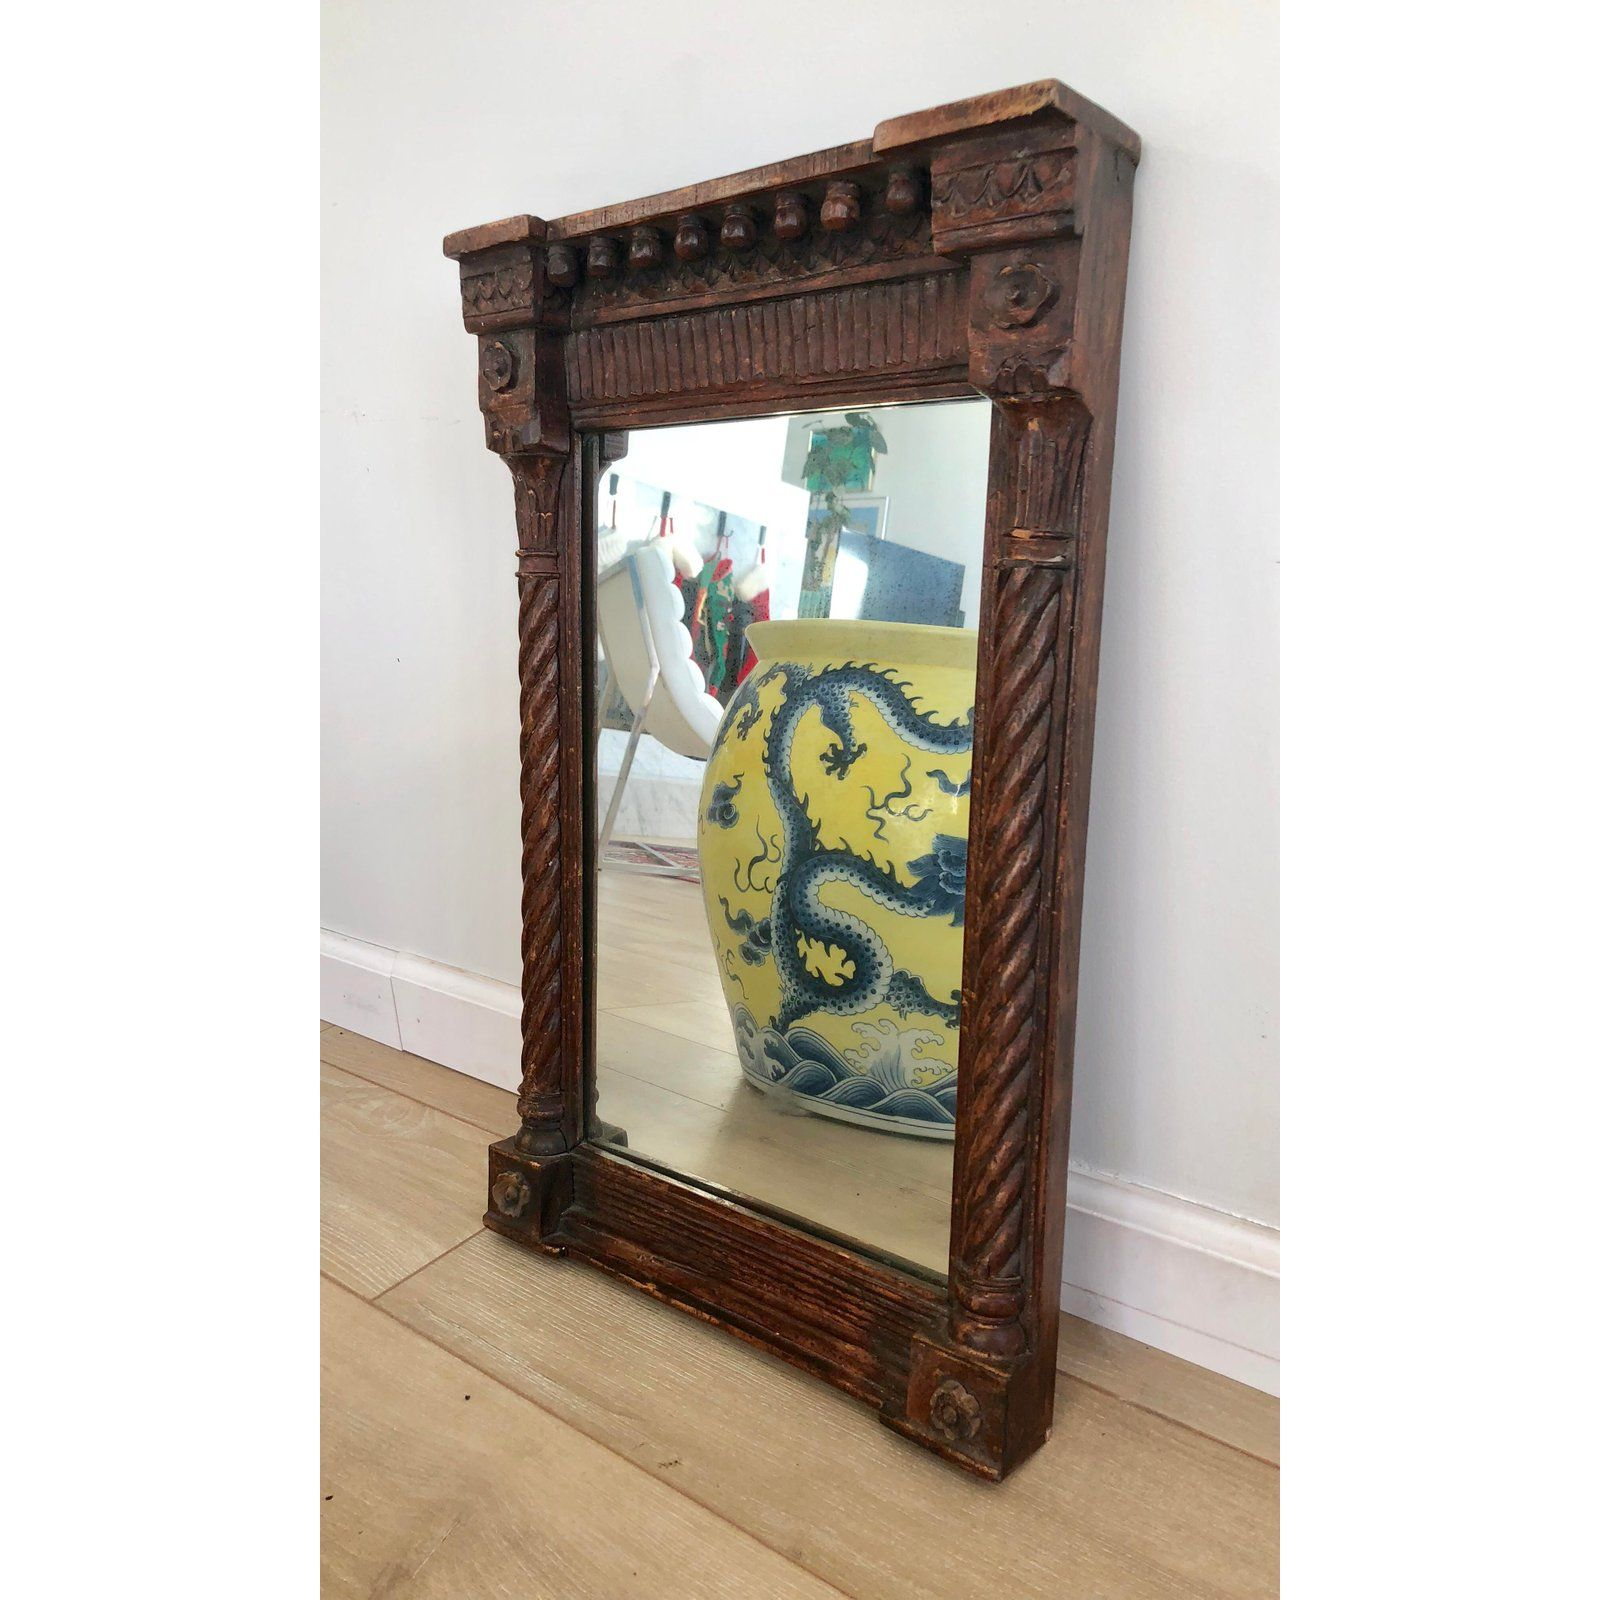 Rustic Antique Hand Carved Wooden Wall Mirror For Sale Image 3 Of 12 Wood Carving Faces Wood Carving Art Wood Carving Designs